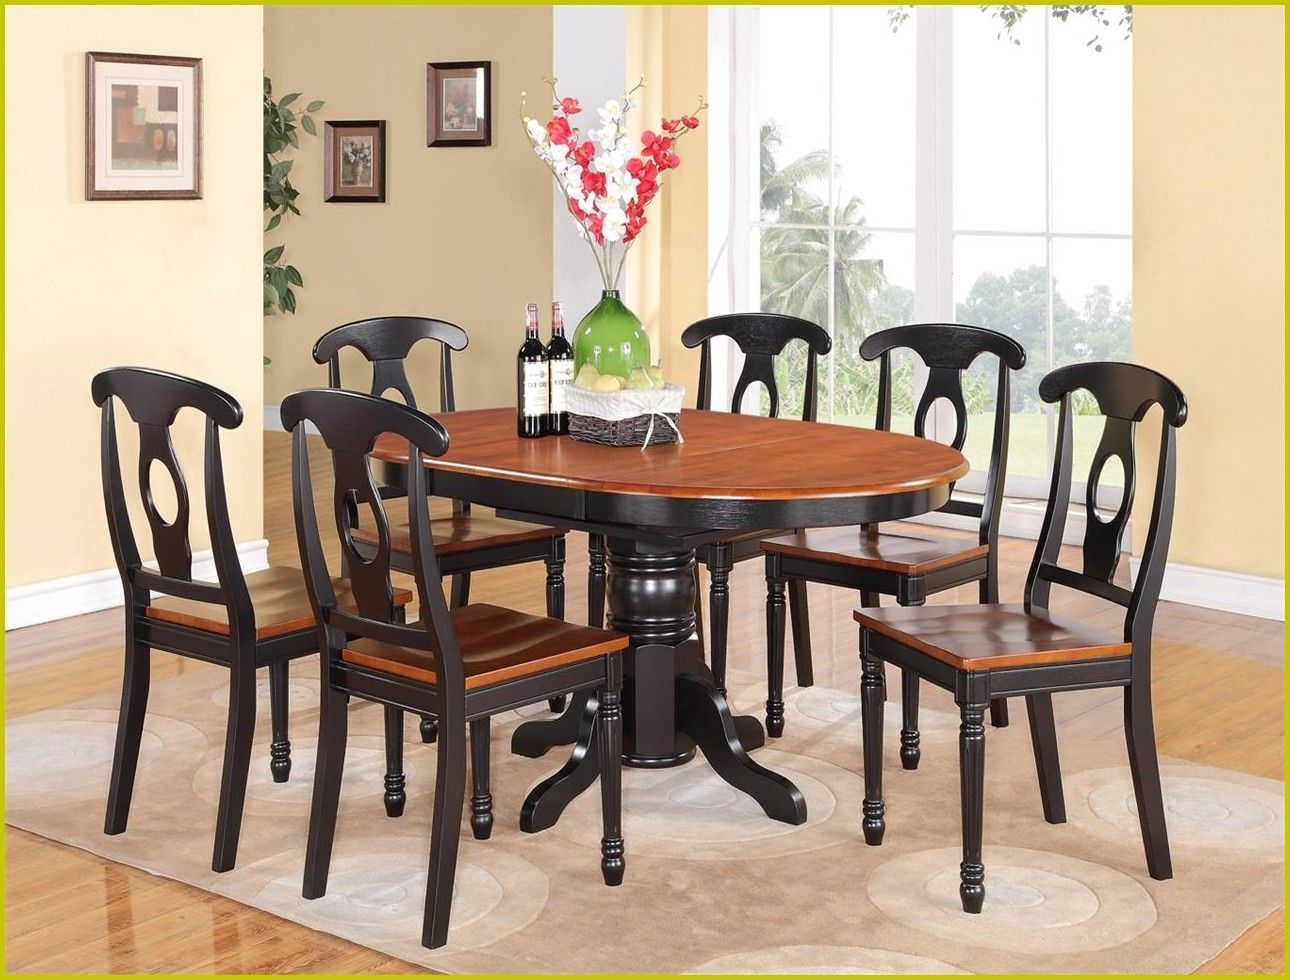 32 small kitchen table and chairs target #small #kitchen #